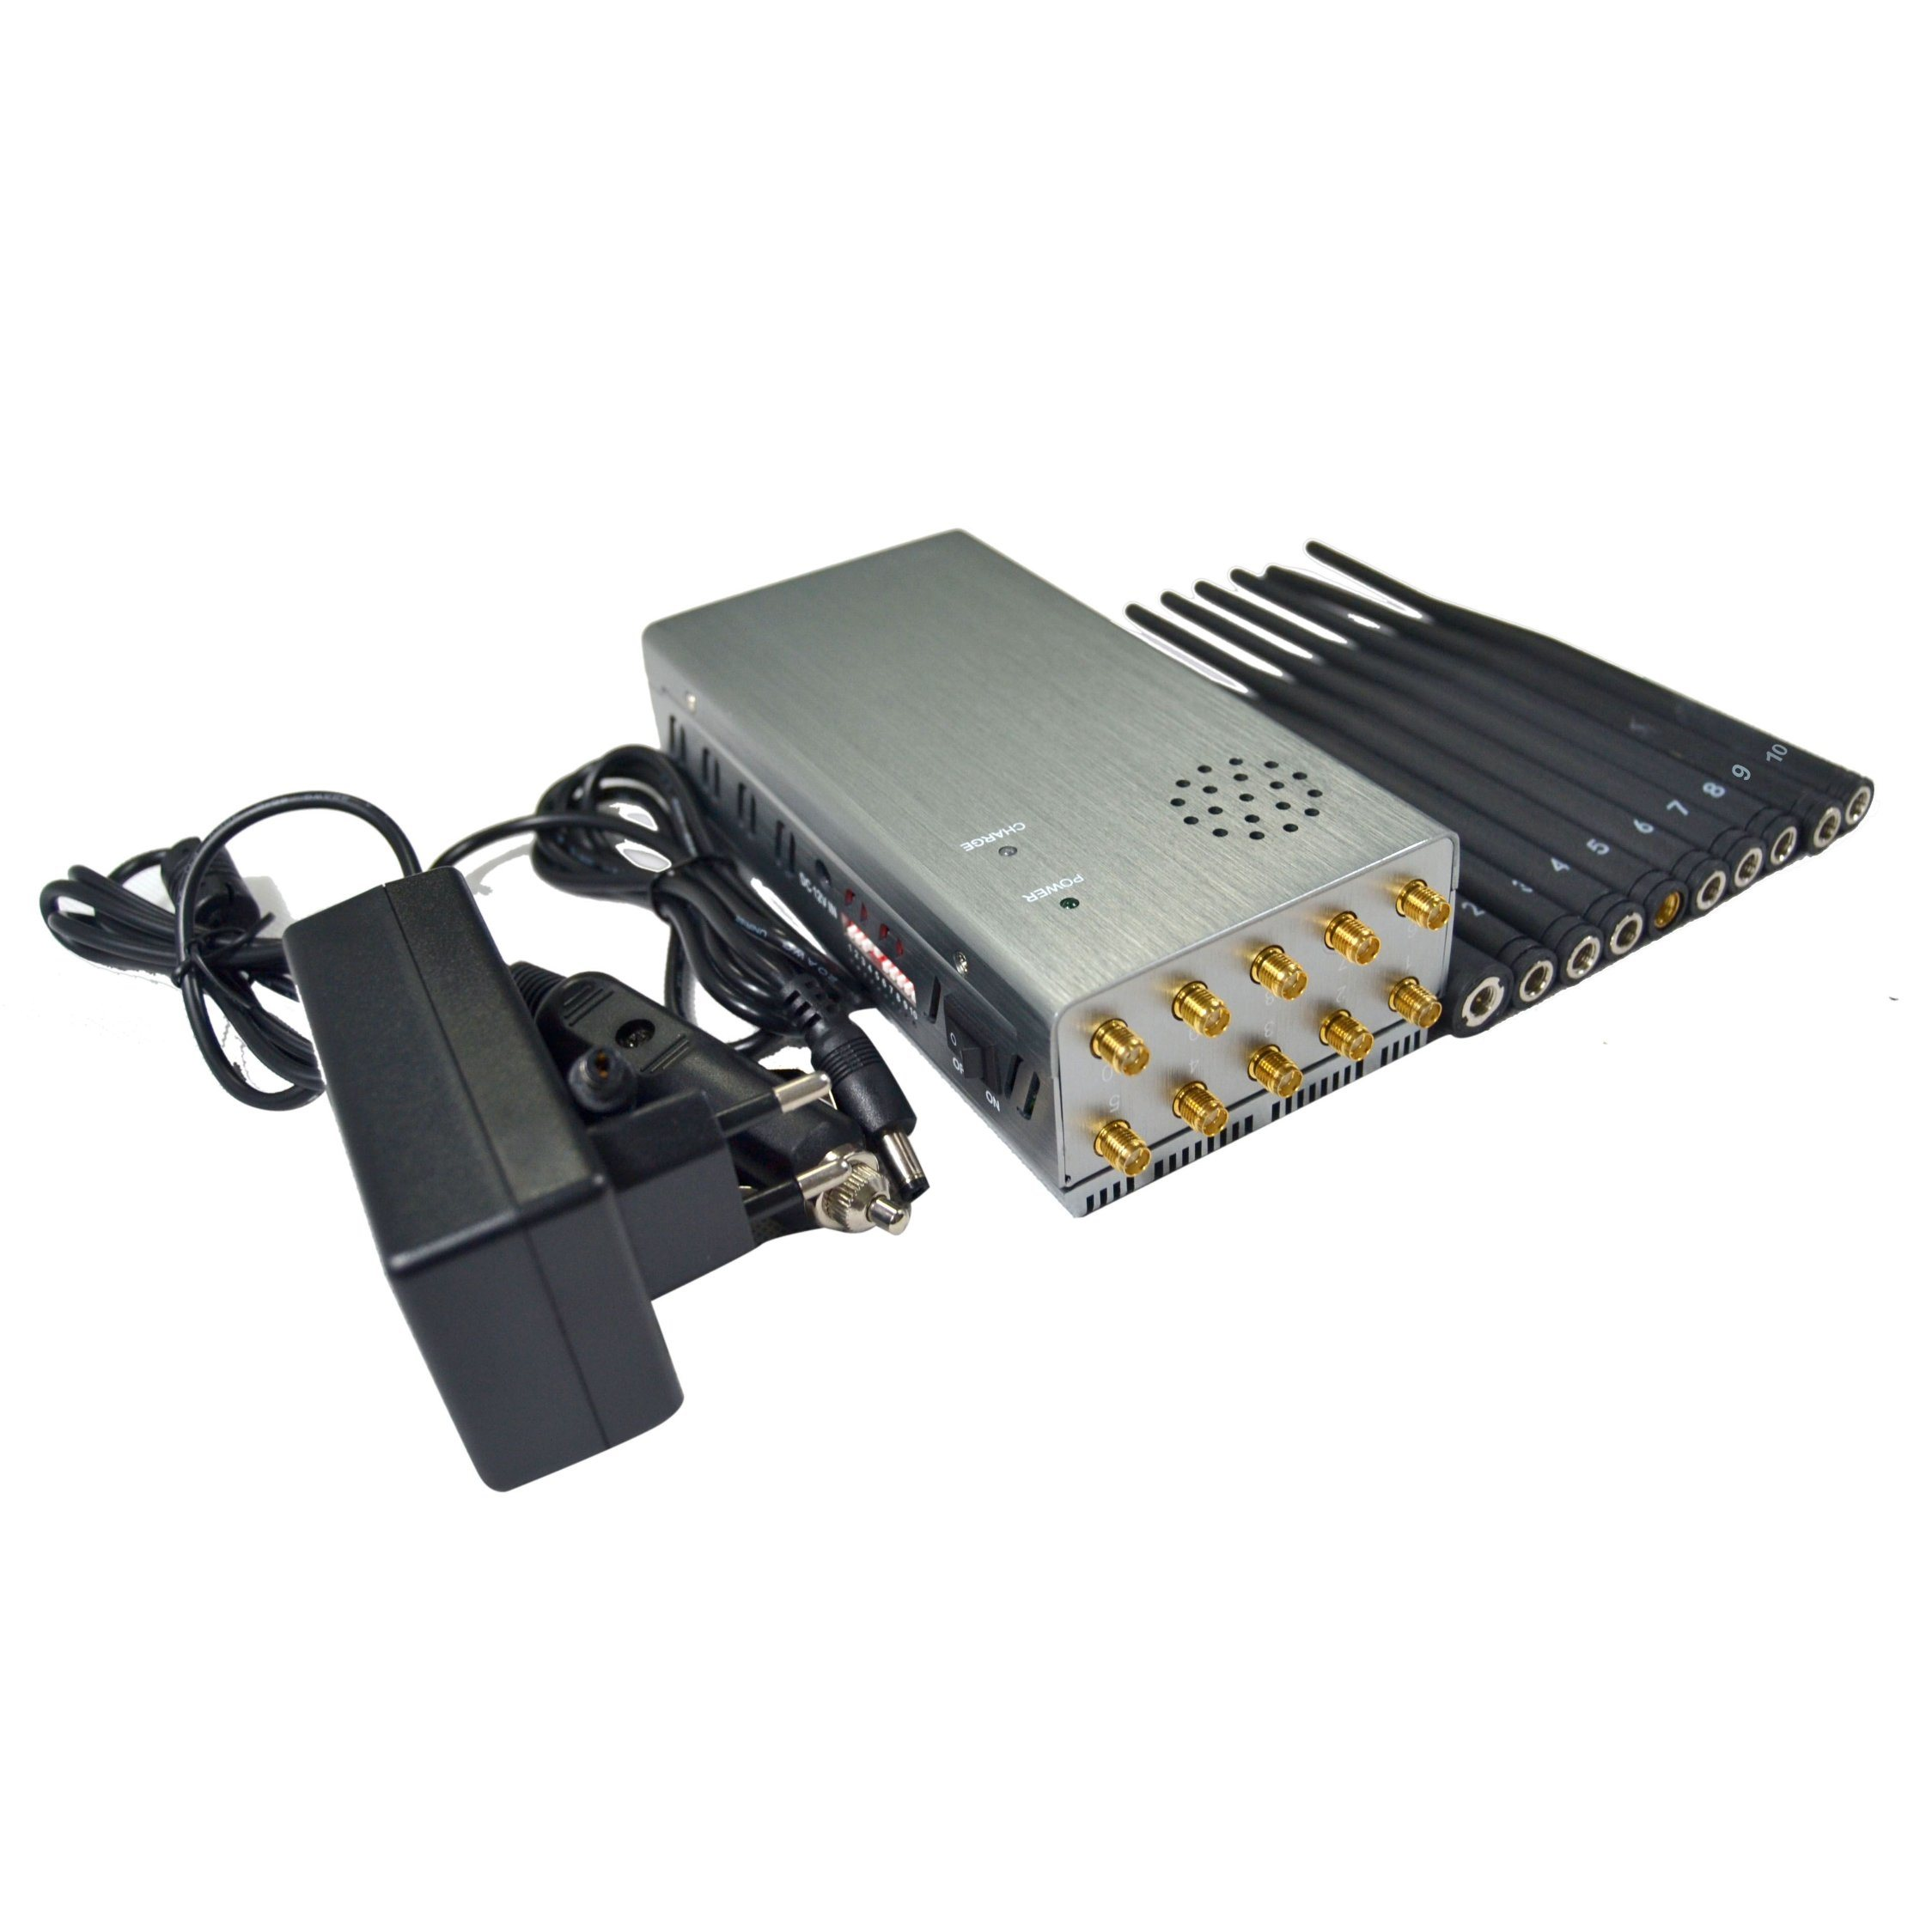 Jammer radar - China The King of Portable Jammers with 8000mA and 10 Antennas Including 2g 3G 4G 5g GPS 433MHz315MHz868MHz WiFi - China 8000mA Battery Jammer, Large Volume Power Signal Blocker